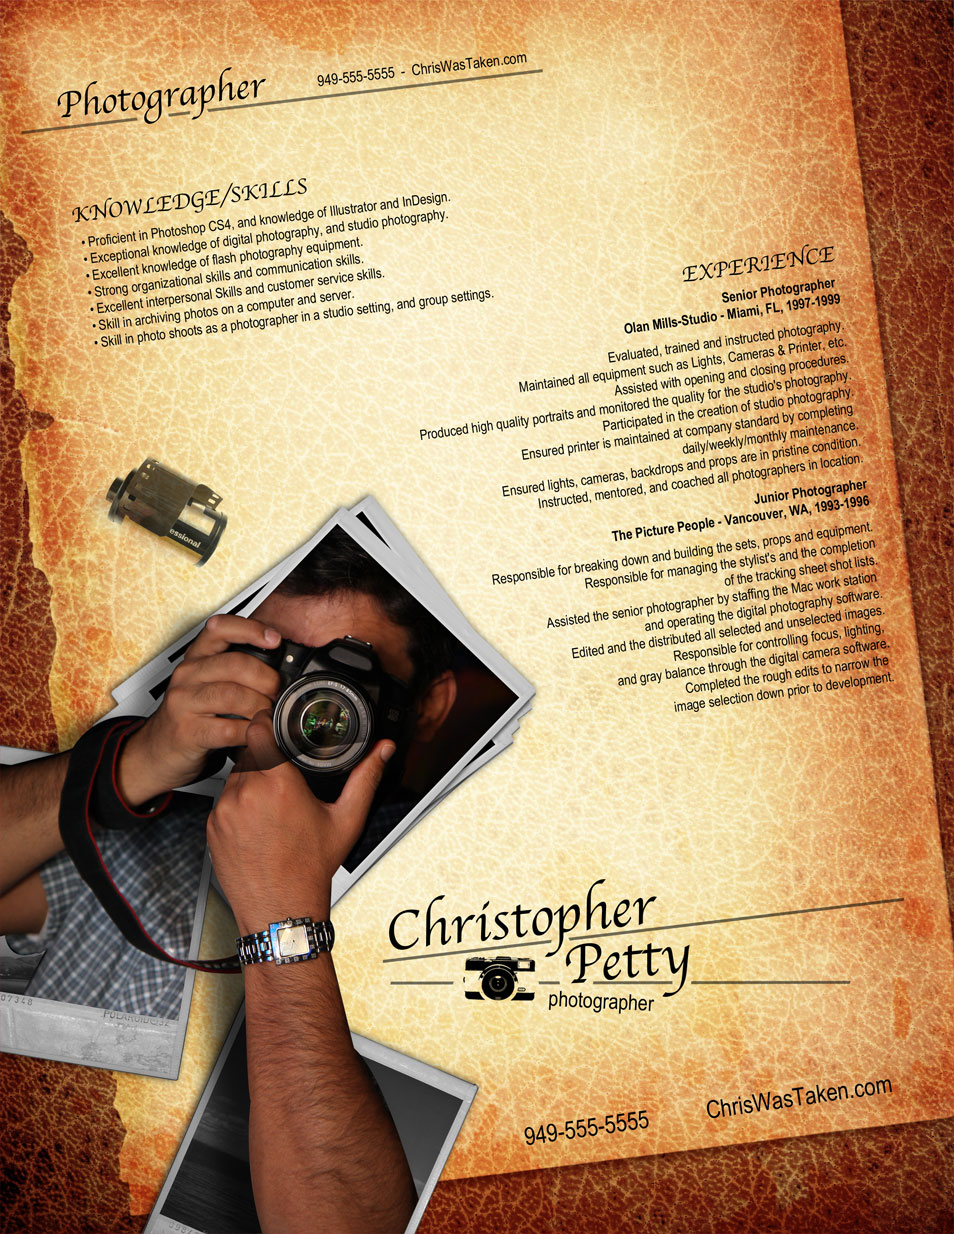 Opposenewapstandardsus  Marvelous  Creative Cvresume Design Inspiration With Exquisite Resume Photographer With Alluring Piano Teacher Resume Also Reason For Leaving Resume In Addition Assistant Director Resume And Cover Letters For Resumes Samples As Well As Resume For Freshers Additionally Resume With No Education From Cssauthorcom With Opposenewapstandardsus  Exquisite  Creative Cvresume Design Inspiration With Alluring Resume Photographer And Marvelous Piano Teacher Resume Also Reason For Leaving Resume In Addition Assistant Director Resume From Cssauthorcom